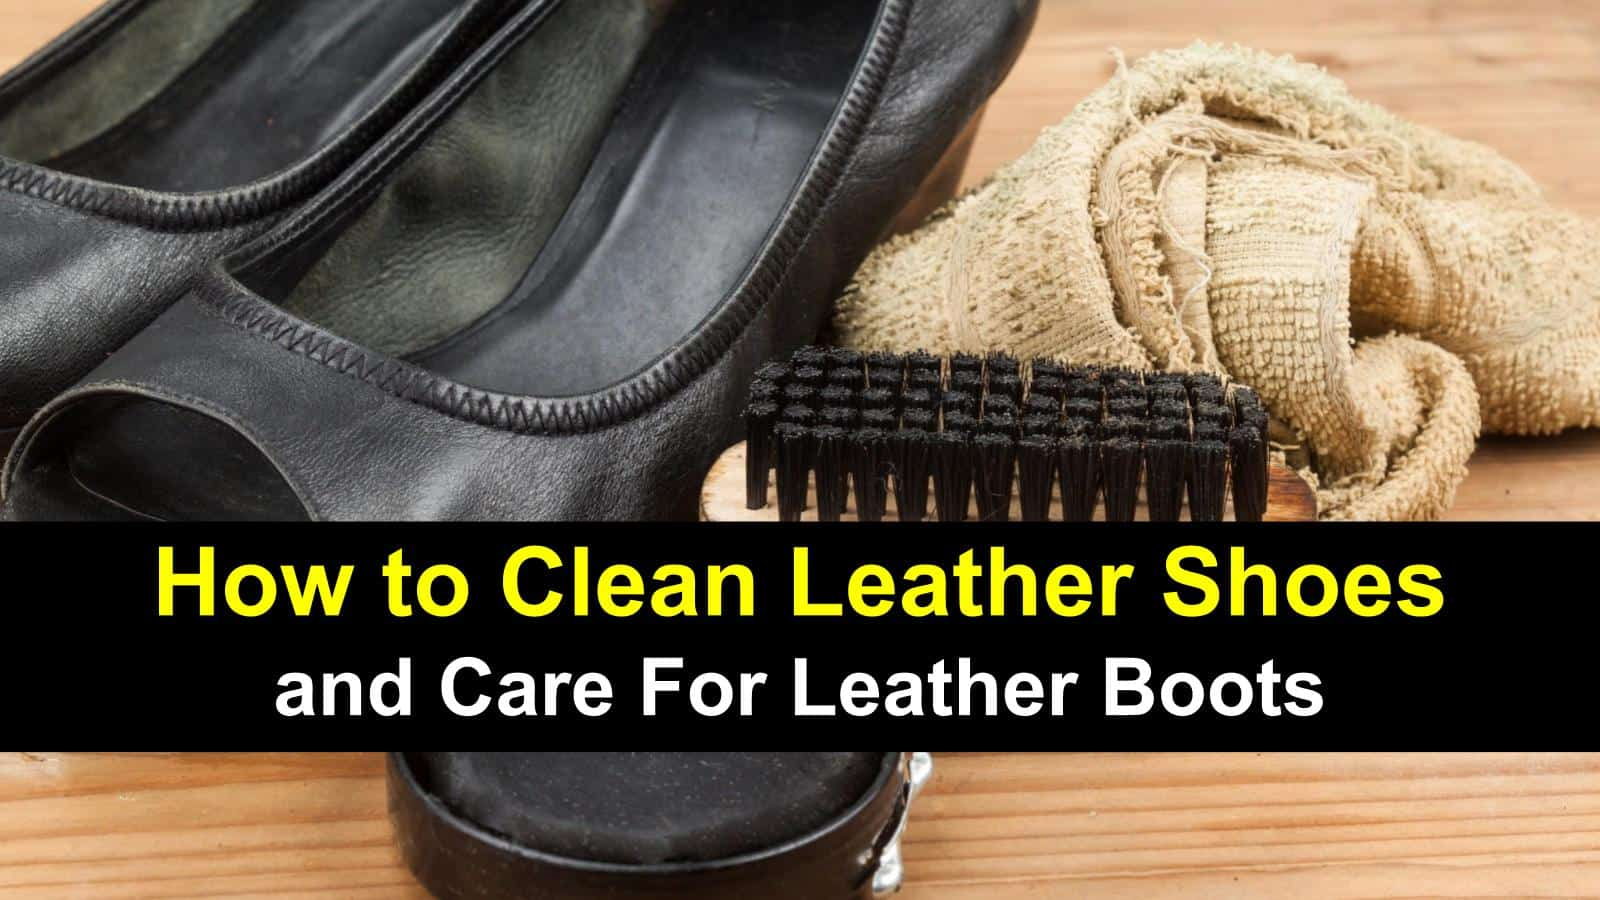 how to clean leather shoes and care for leather boots img